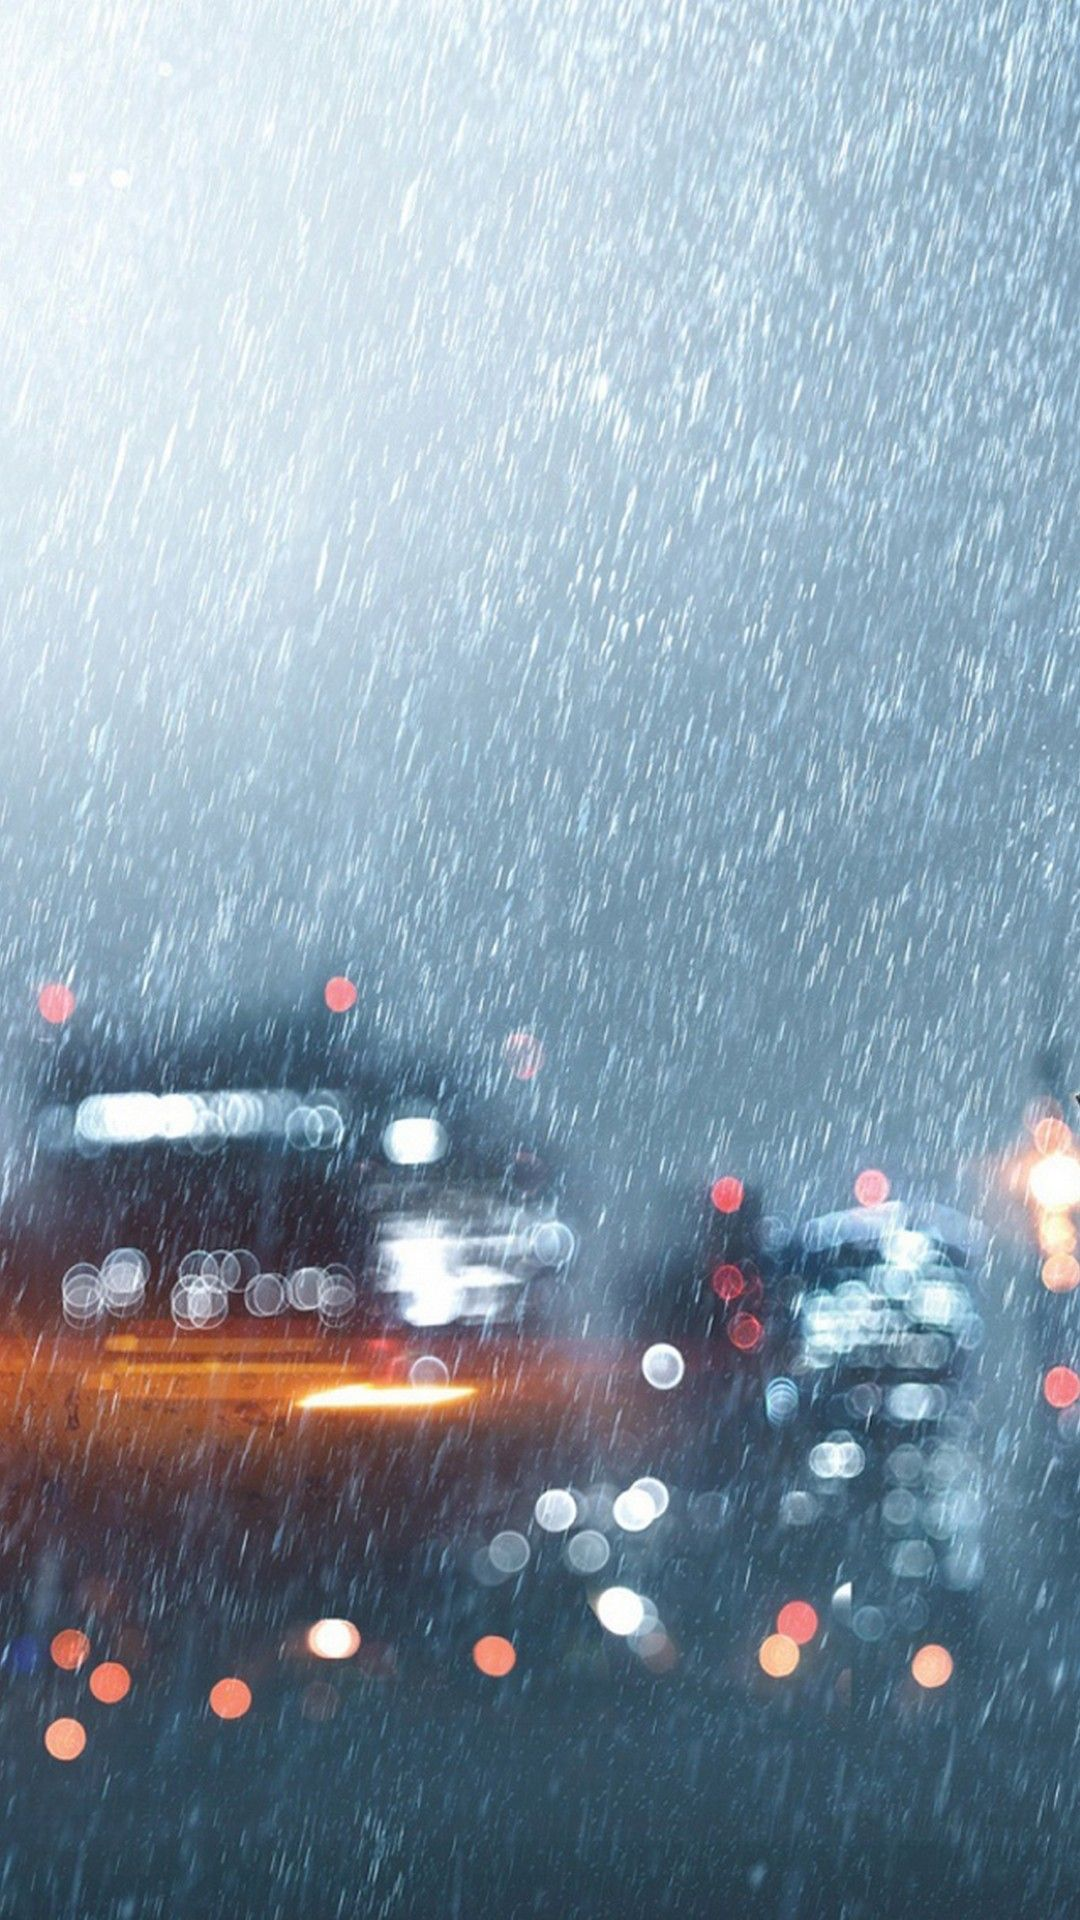 Heavy Rain Wallpaper IPhone